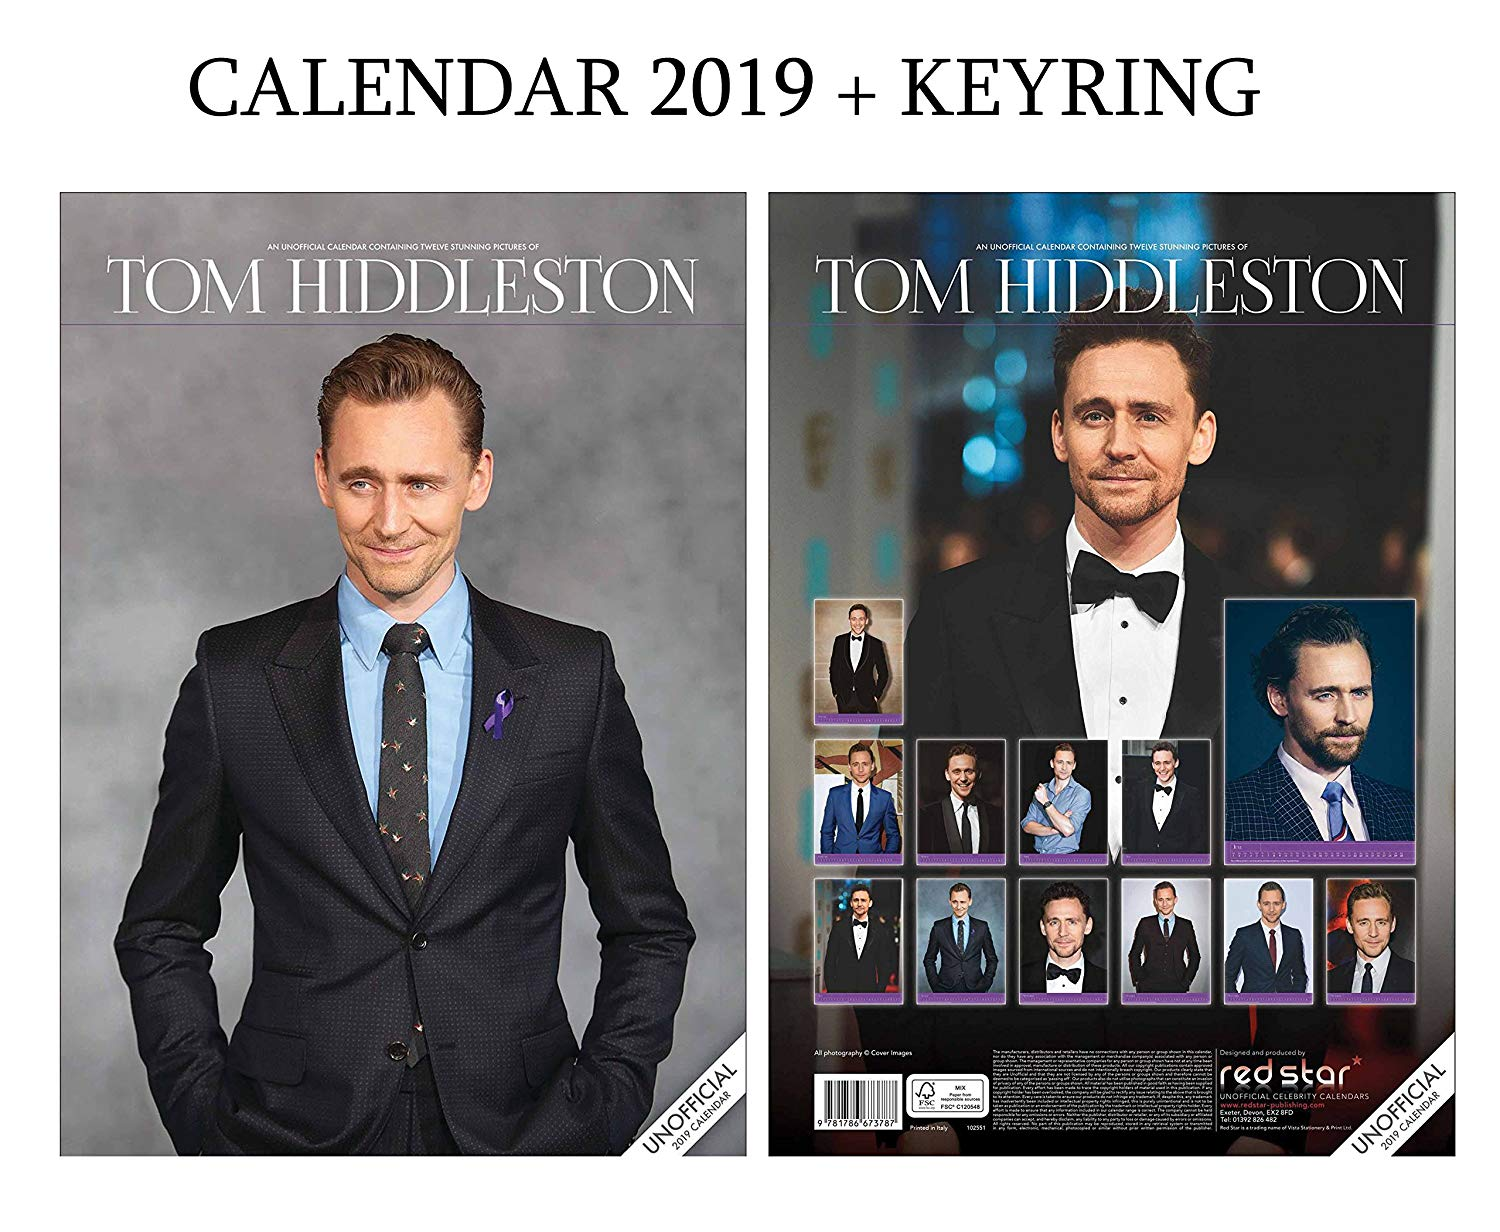 Tom Hiddleston Calendar 2019 (A3 Poster Size) + Tom Hiddleston Keyring